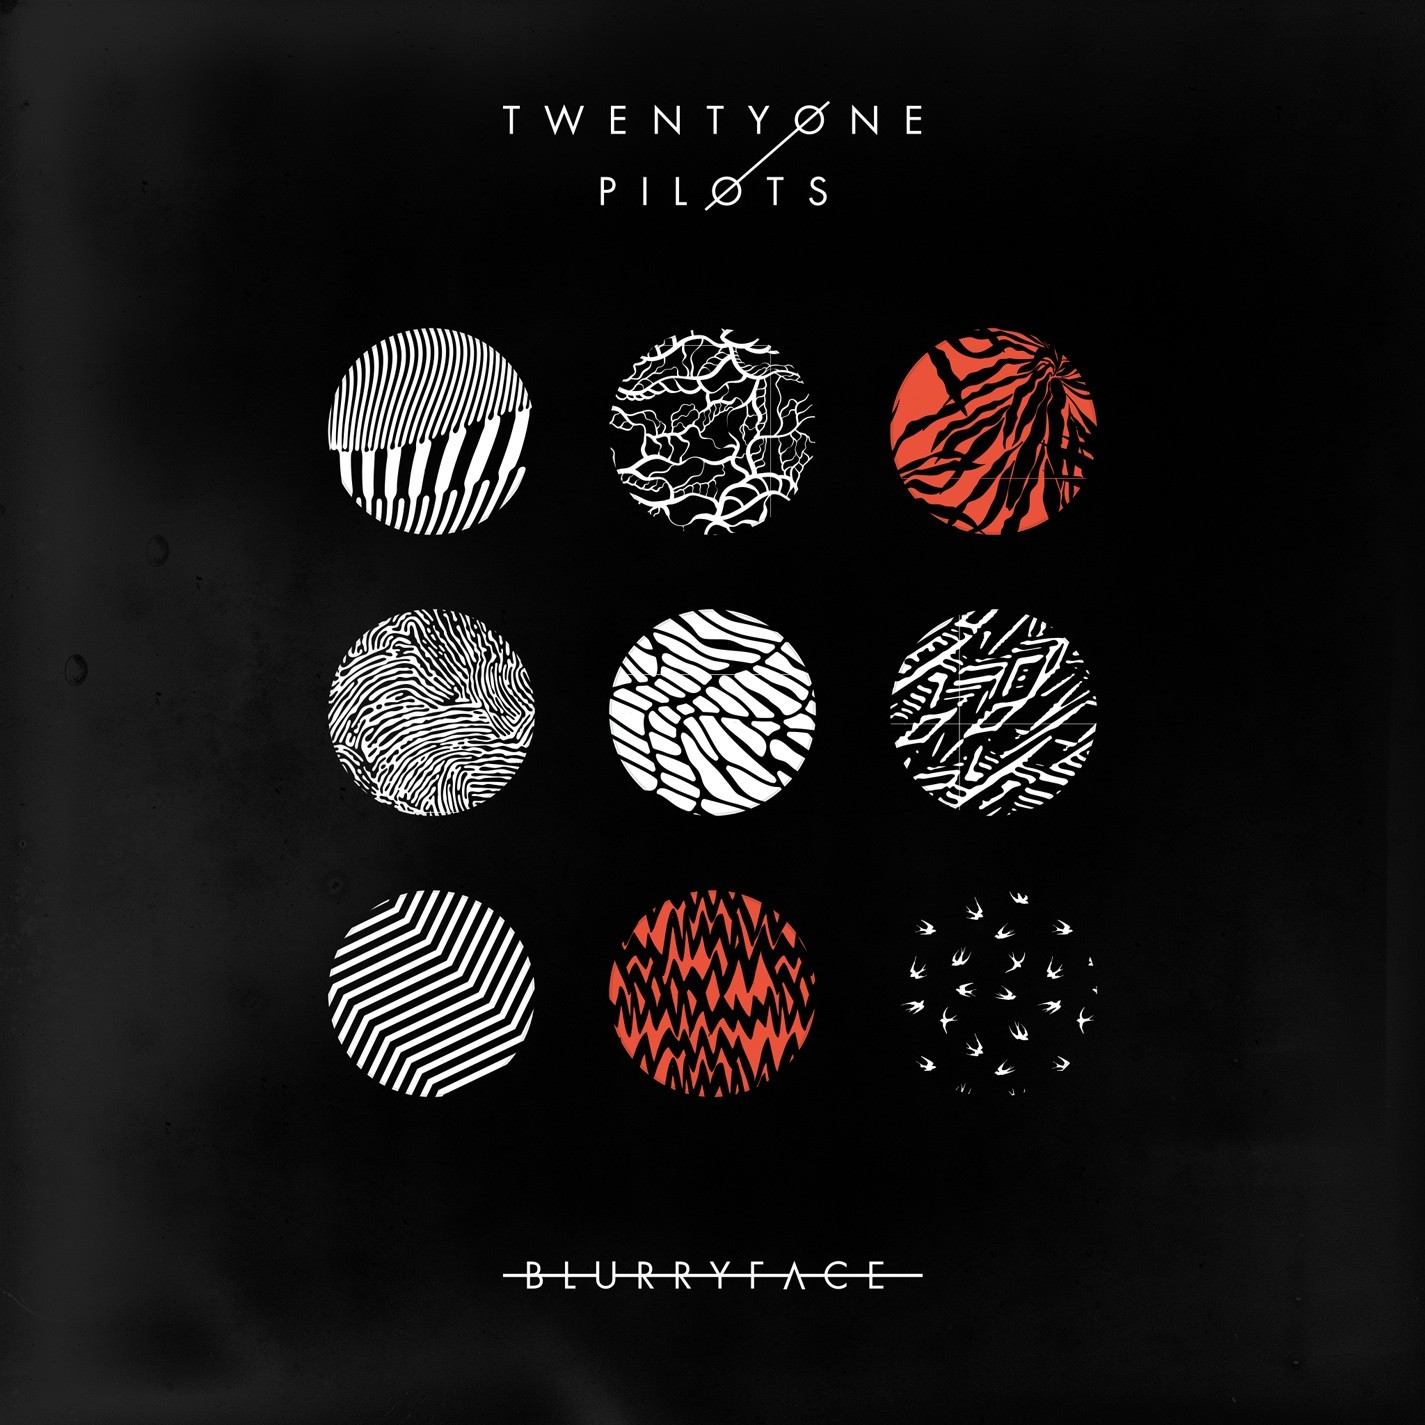 Twenty one pilots for Twenty one pilots